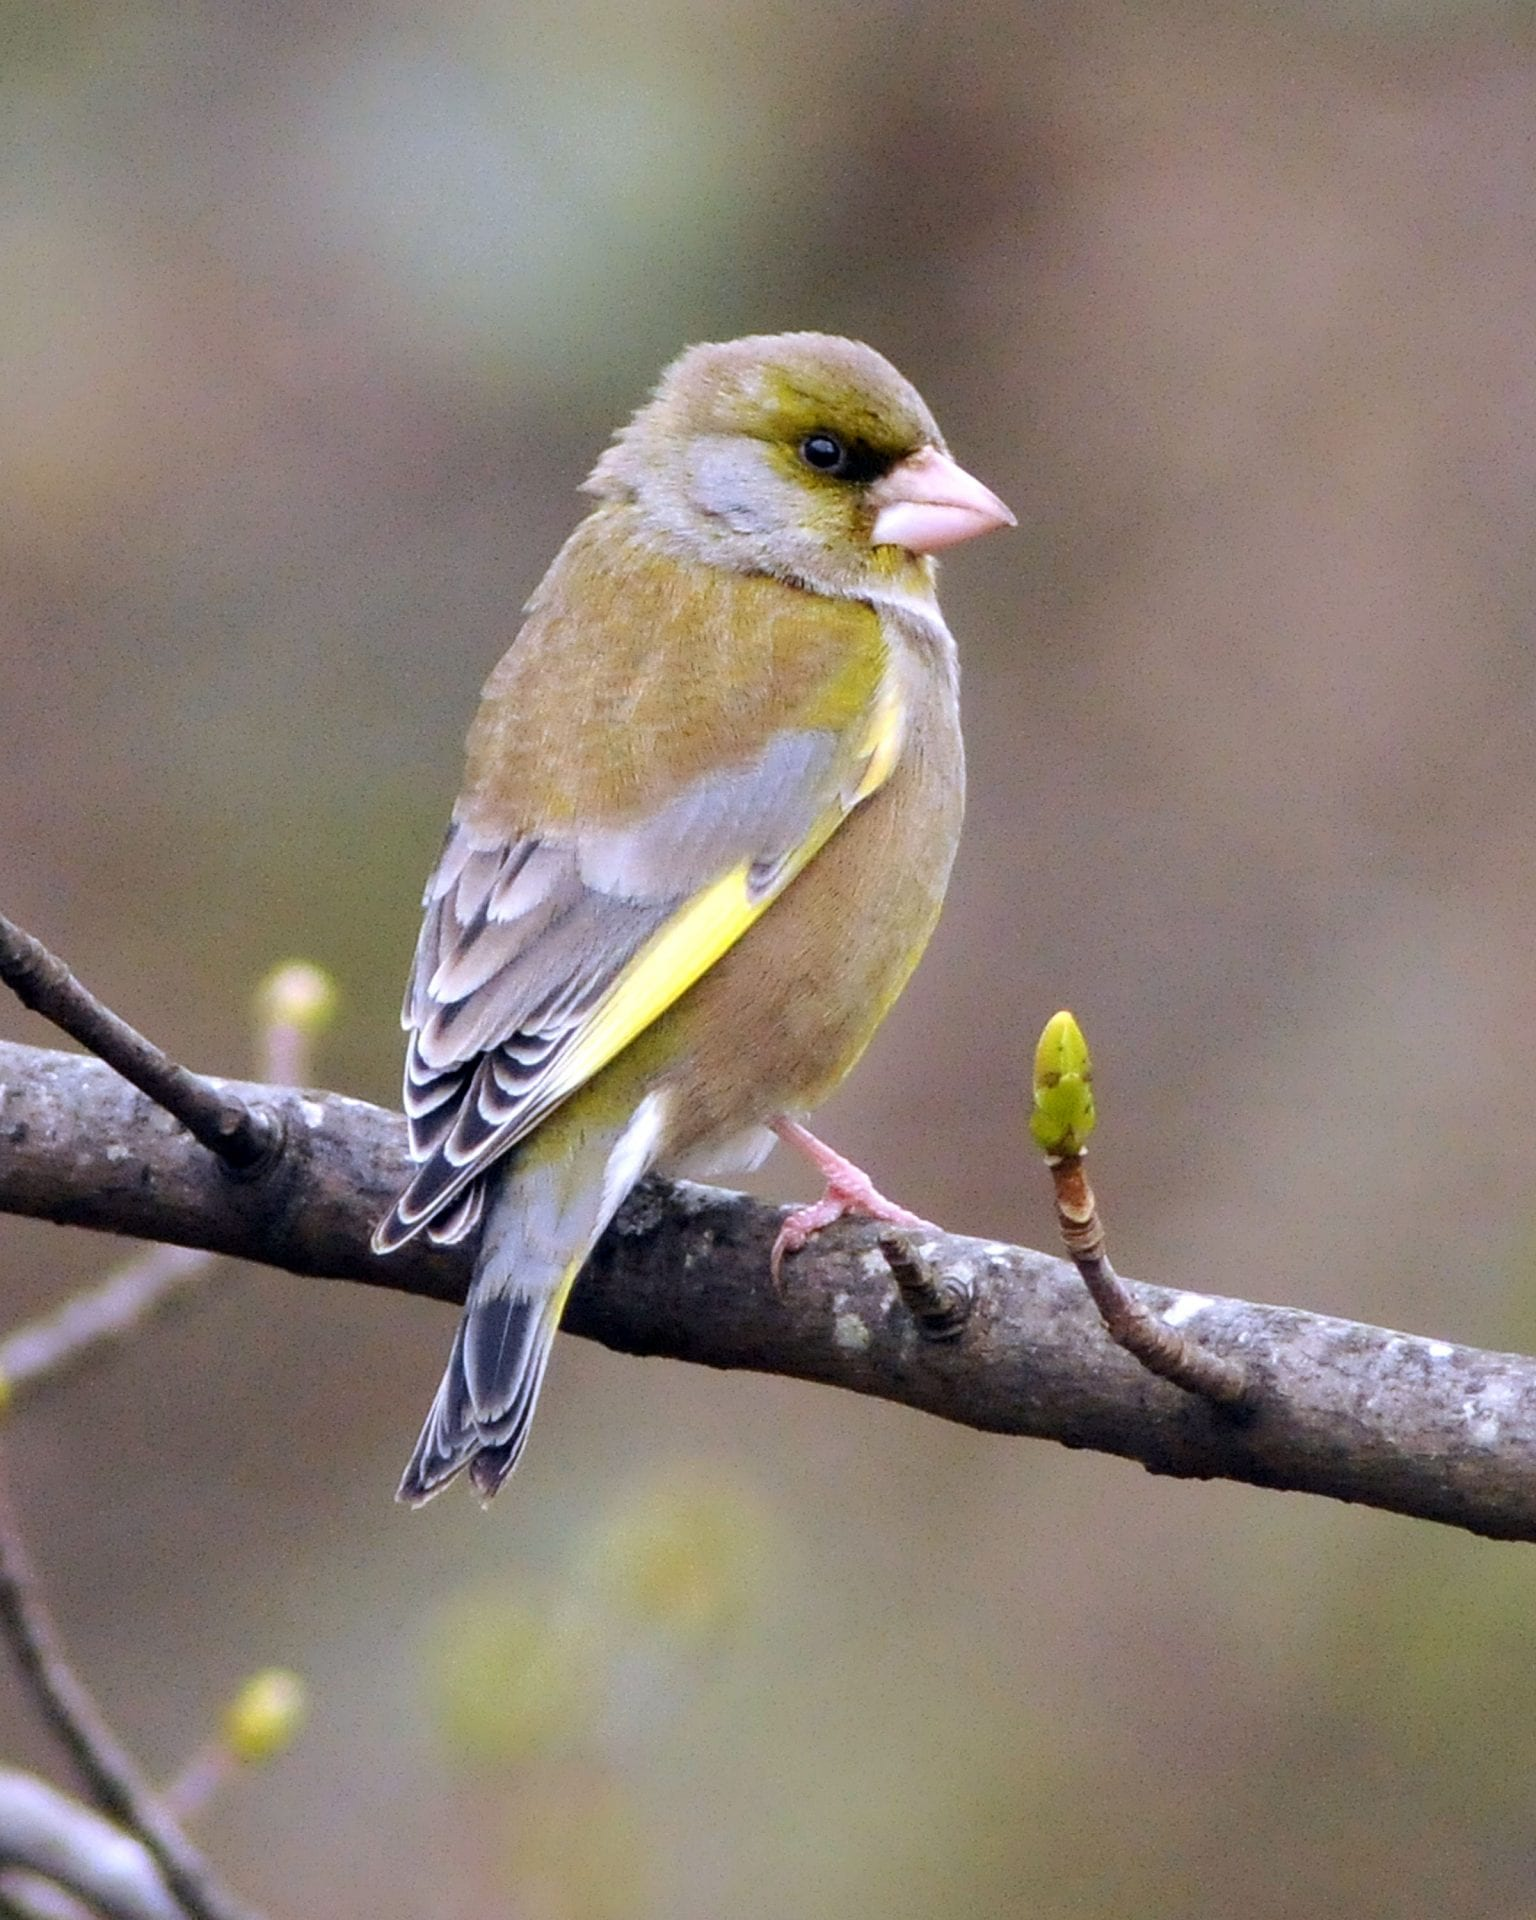 greenfinch-perched-on-a-branch